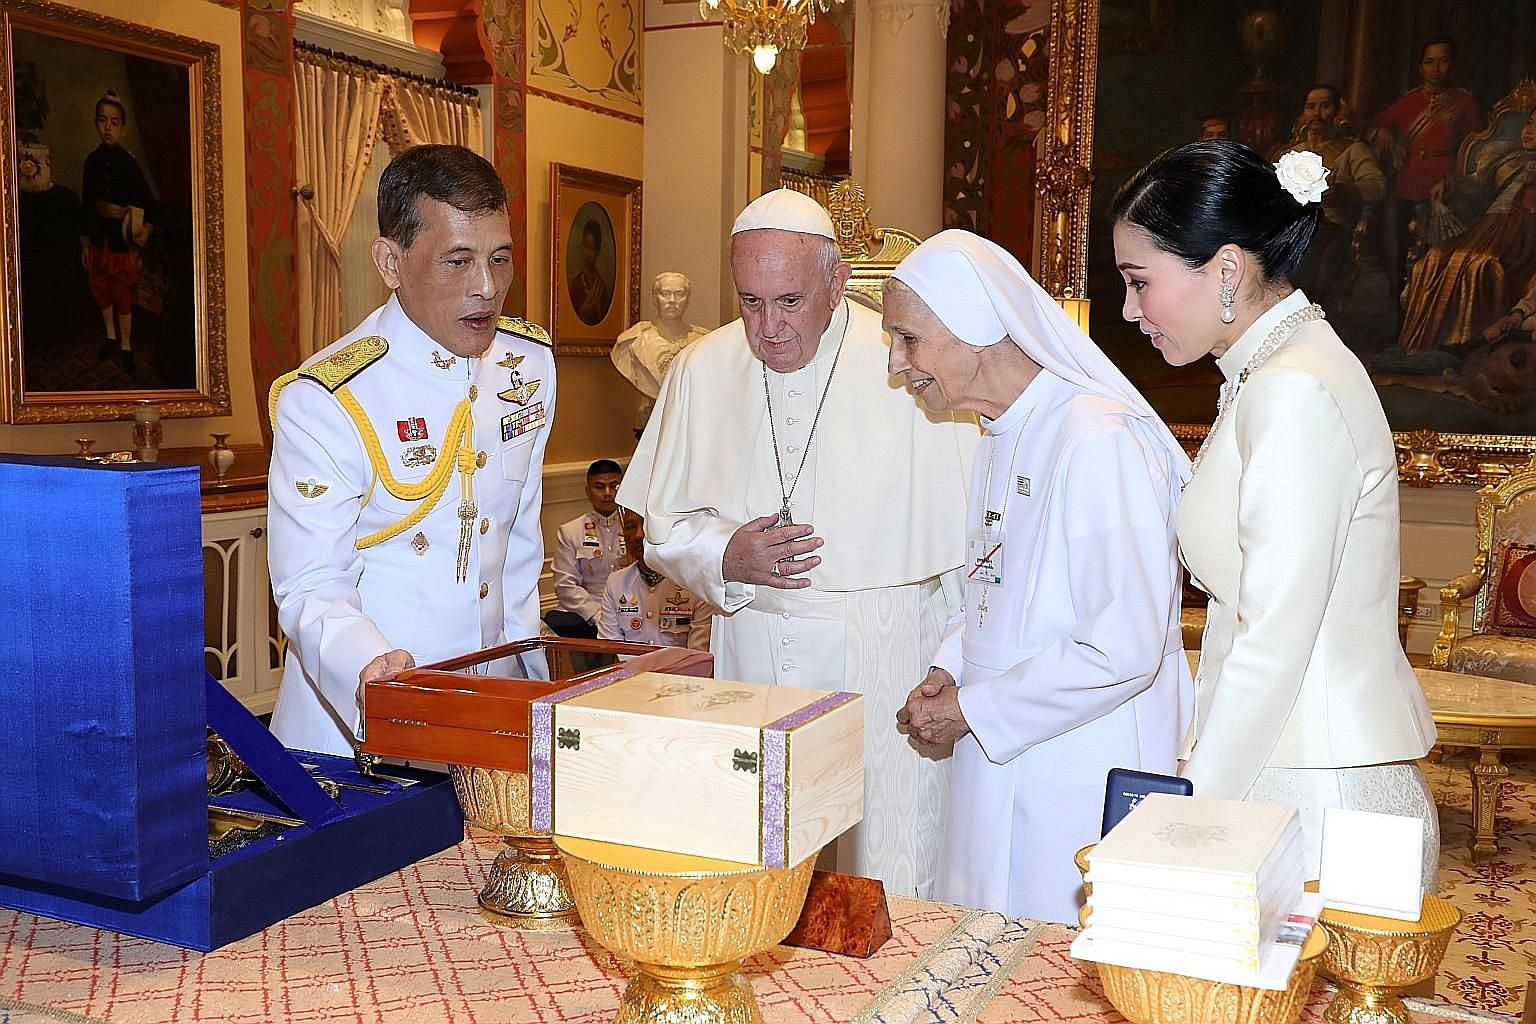 Pope Francis and his cousin, Sister Ana Rosa Sivori, exchanging gifts with Thai King Maha Vajiralongkorn and Queen Suthida during his visit to Bangkok on Thursday as part of his week-long Asia tour. Thai Catholics - a minority making up only 0.58 per